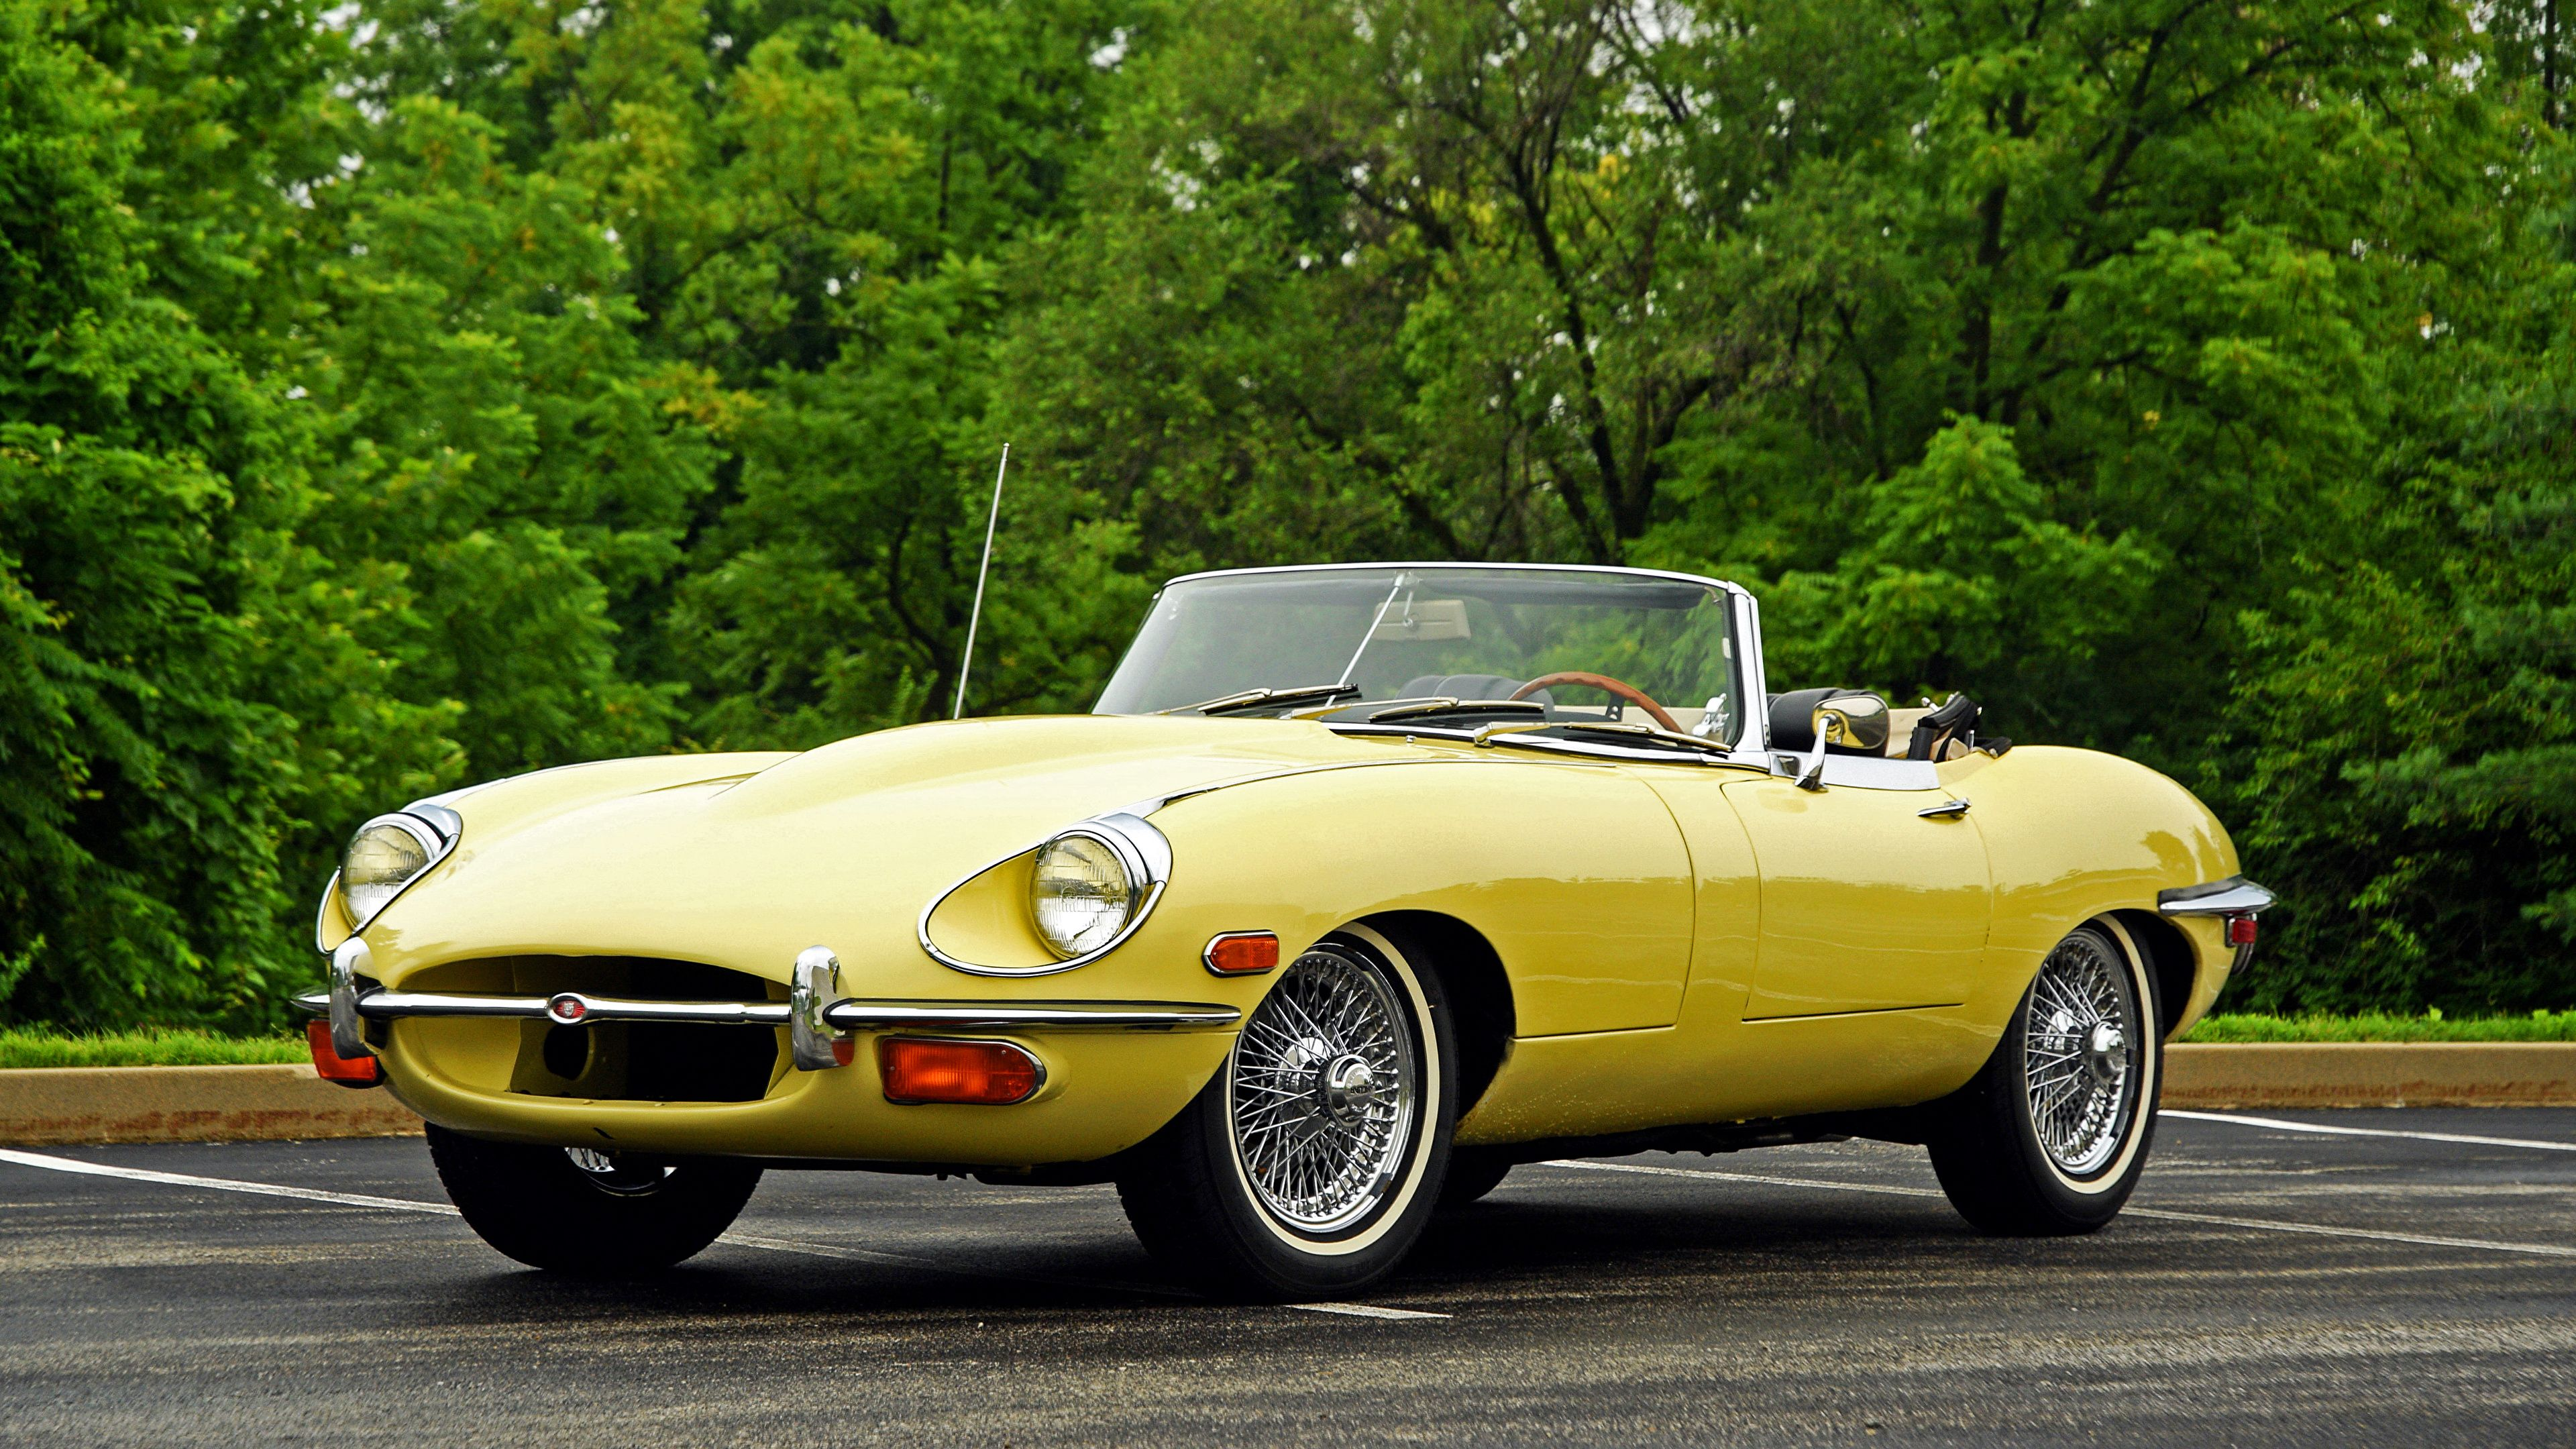 3840x2160 jaguar r tro style 1968 e type jaune cabriolet ancien voitures en jaune je pr f re. Black Bedroom Furniture Sets. Home Design Ideas